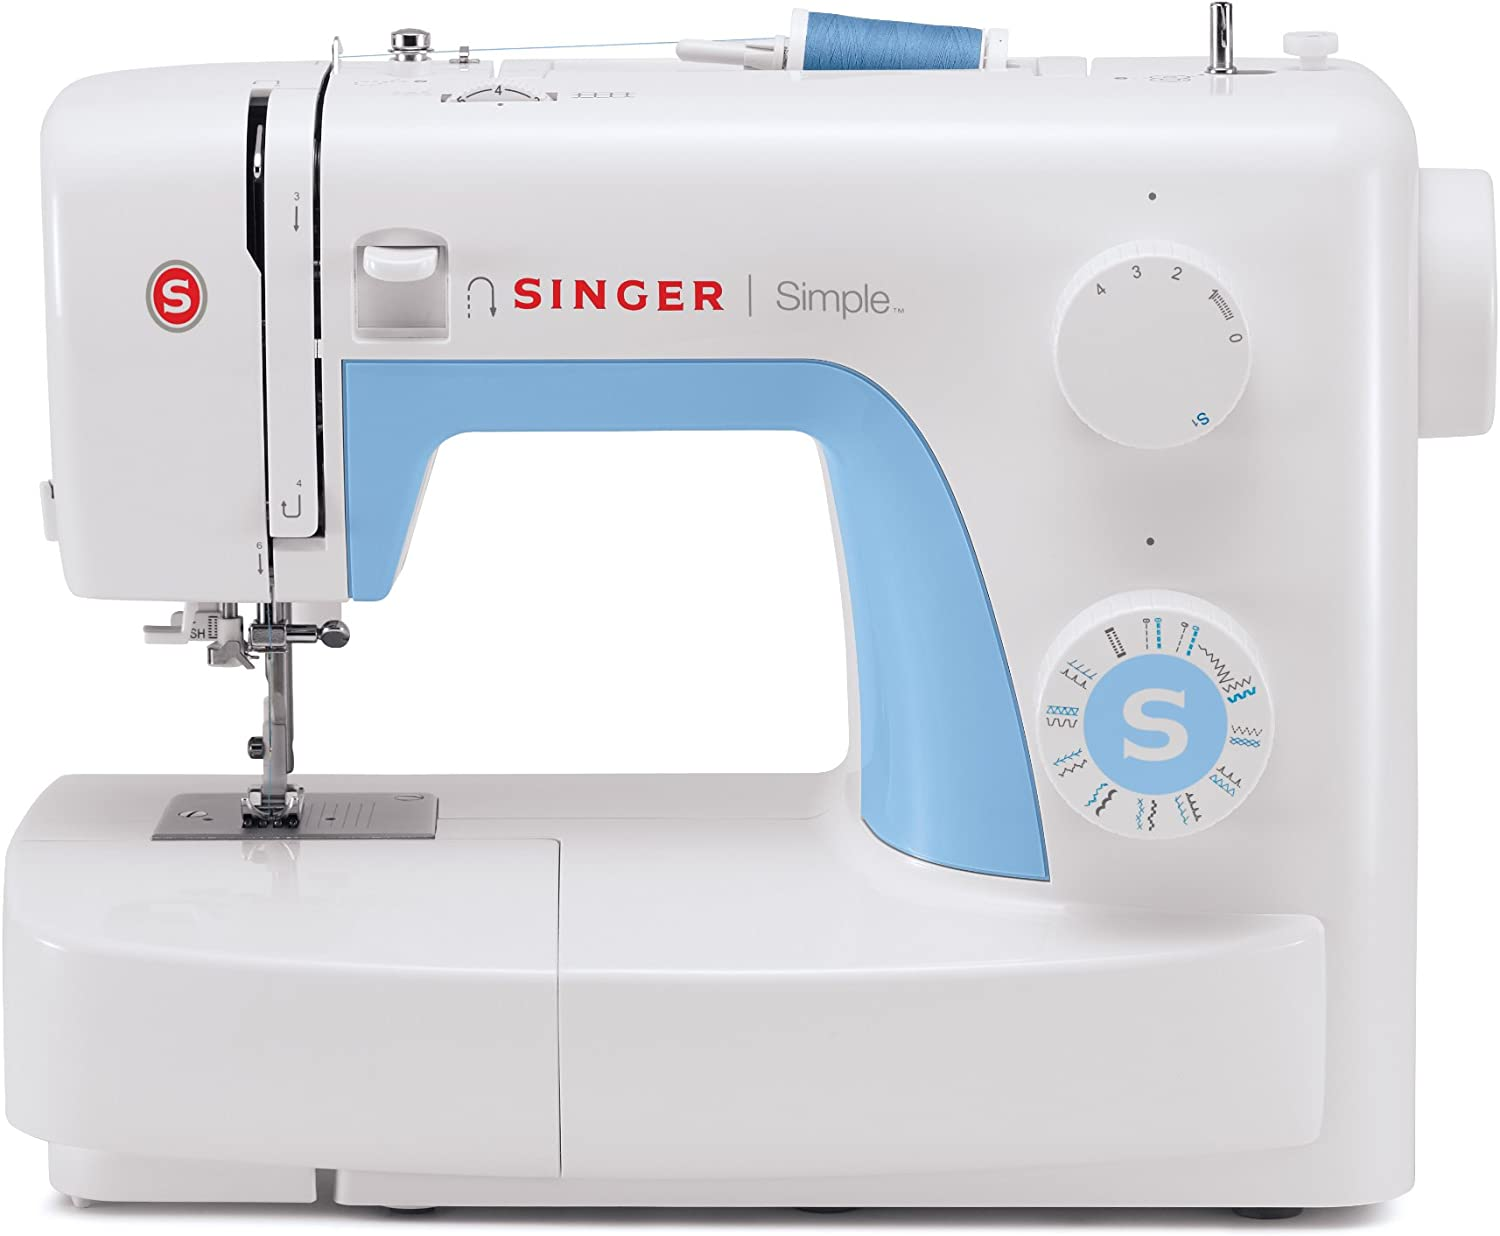 Singer 3221 Simple Sewing Machine - Automatic Niddle Threader